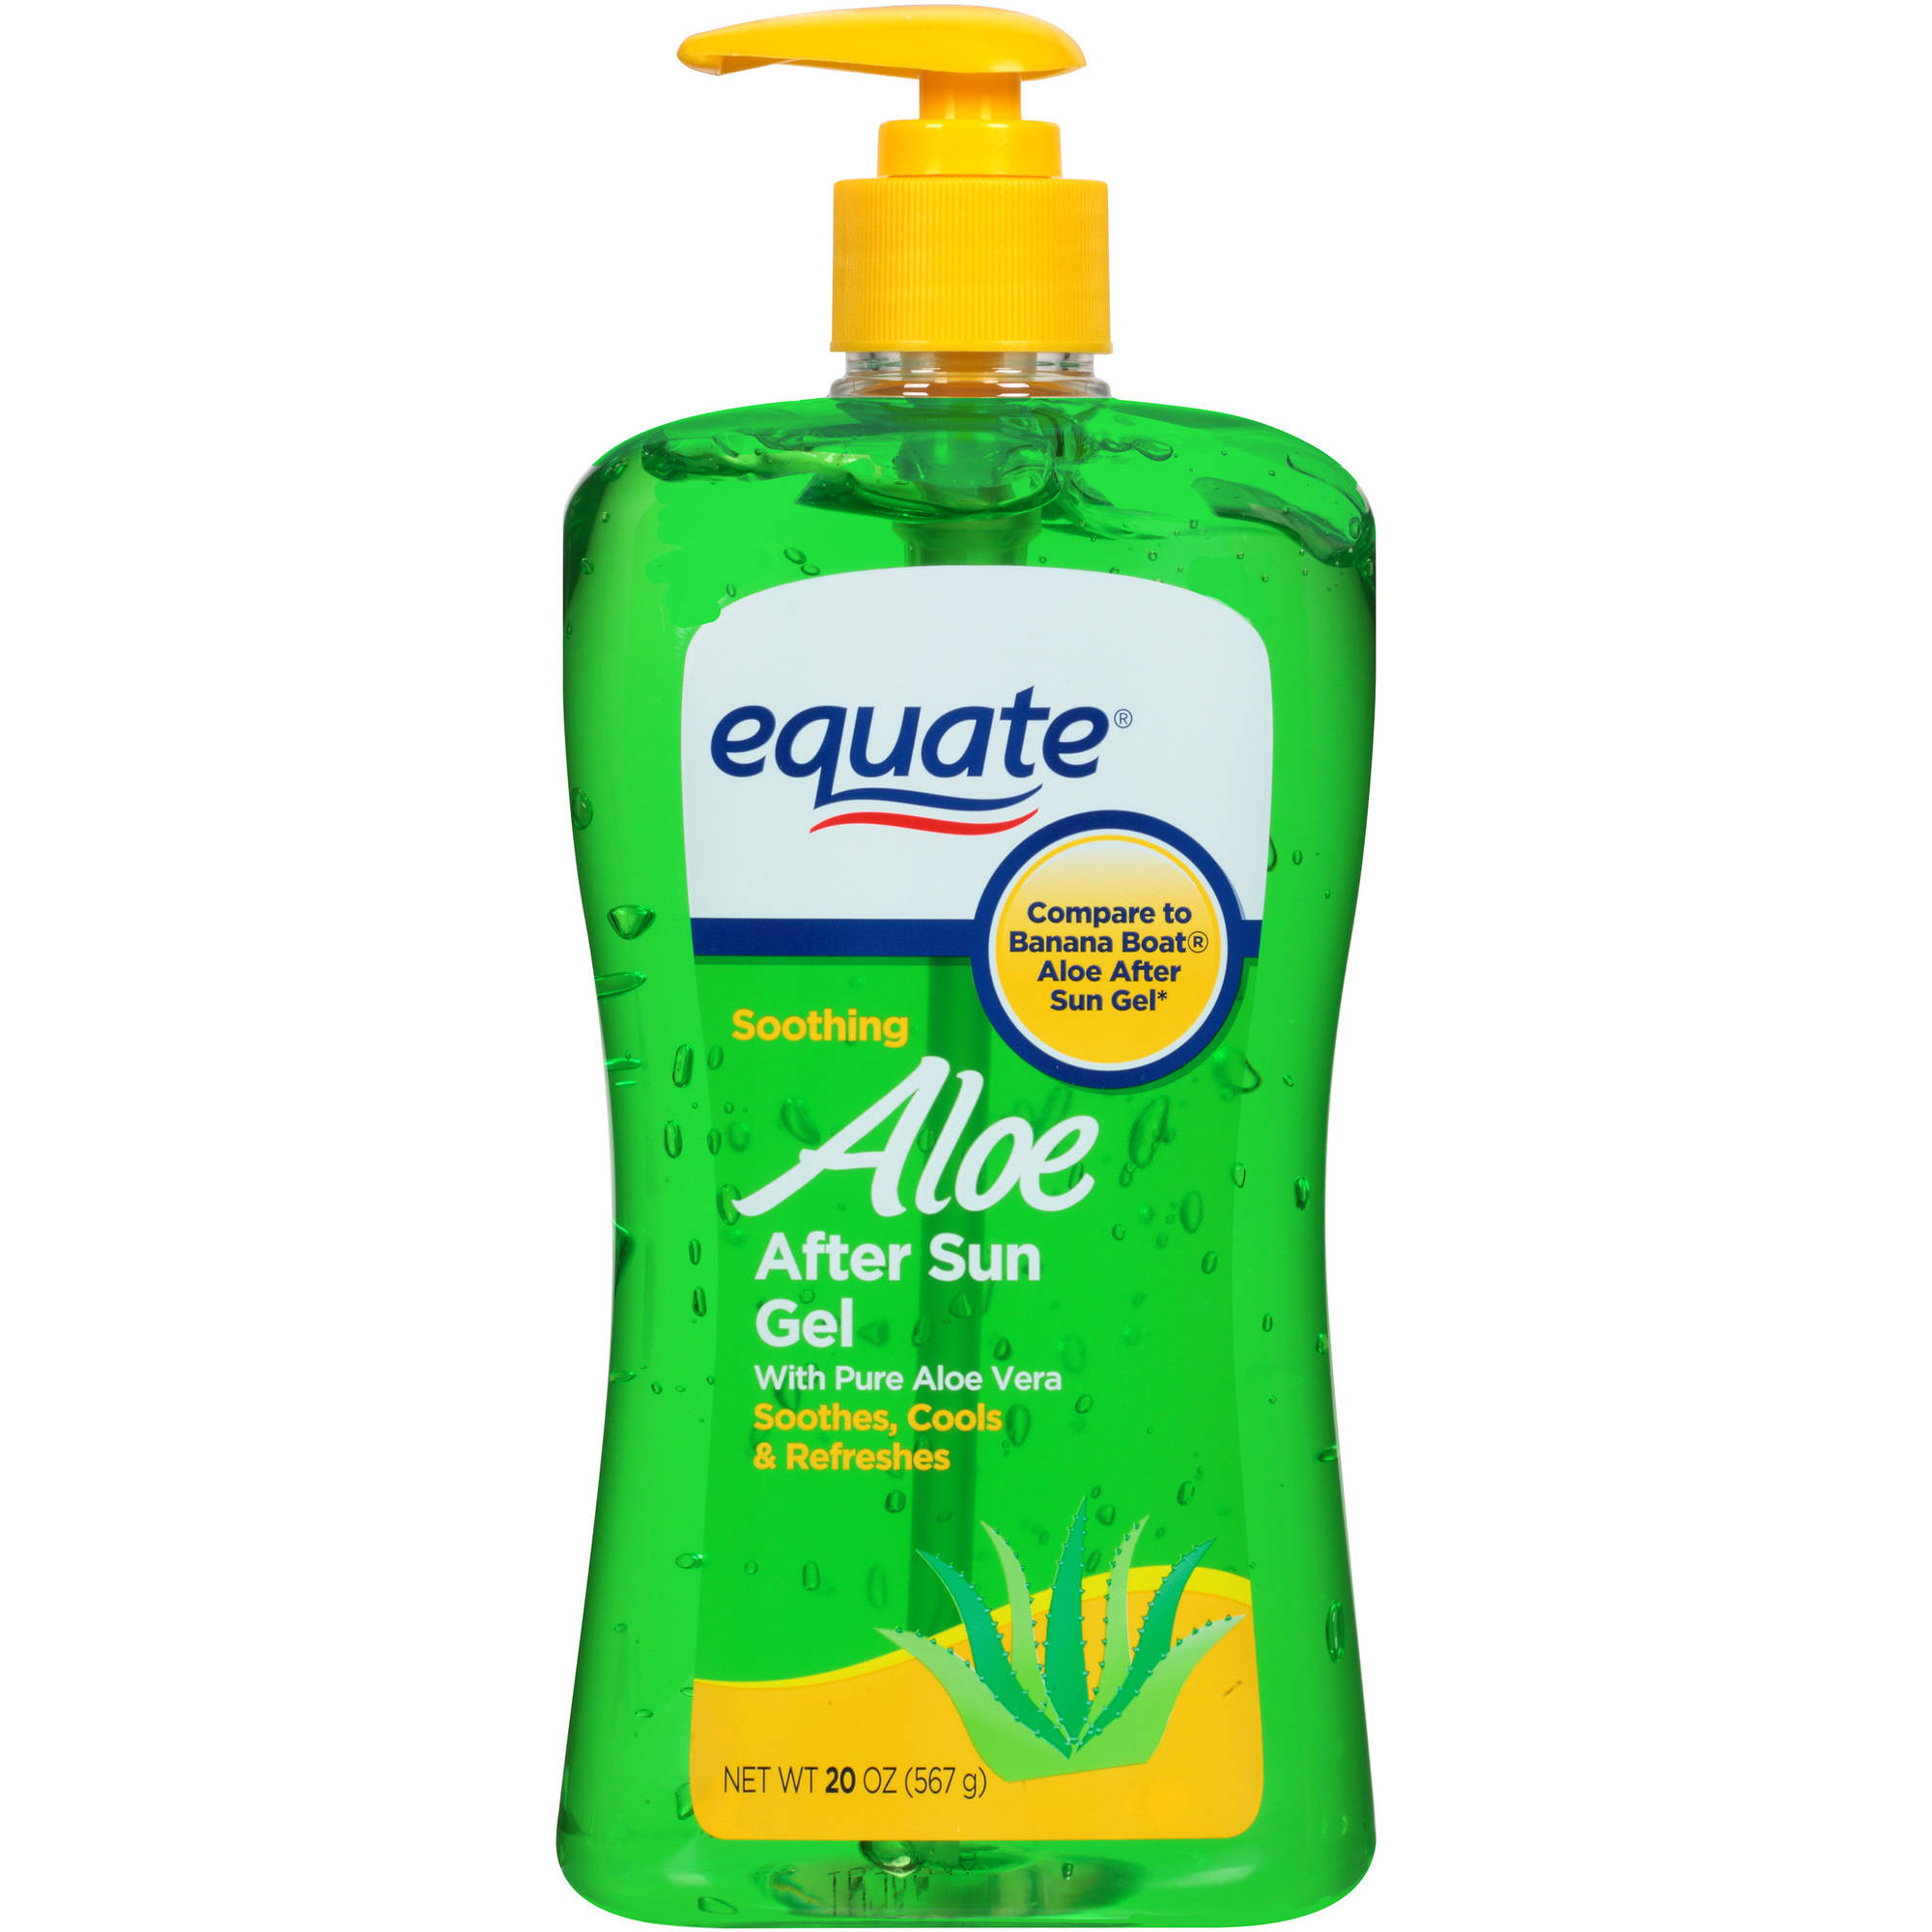 Equate Soothing Aloe After Sun Gel, 20 Fl Oz